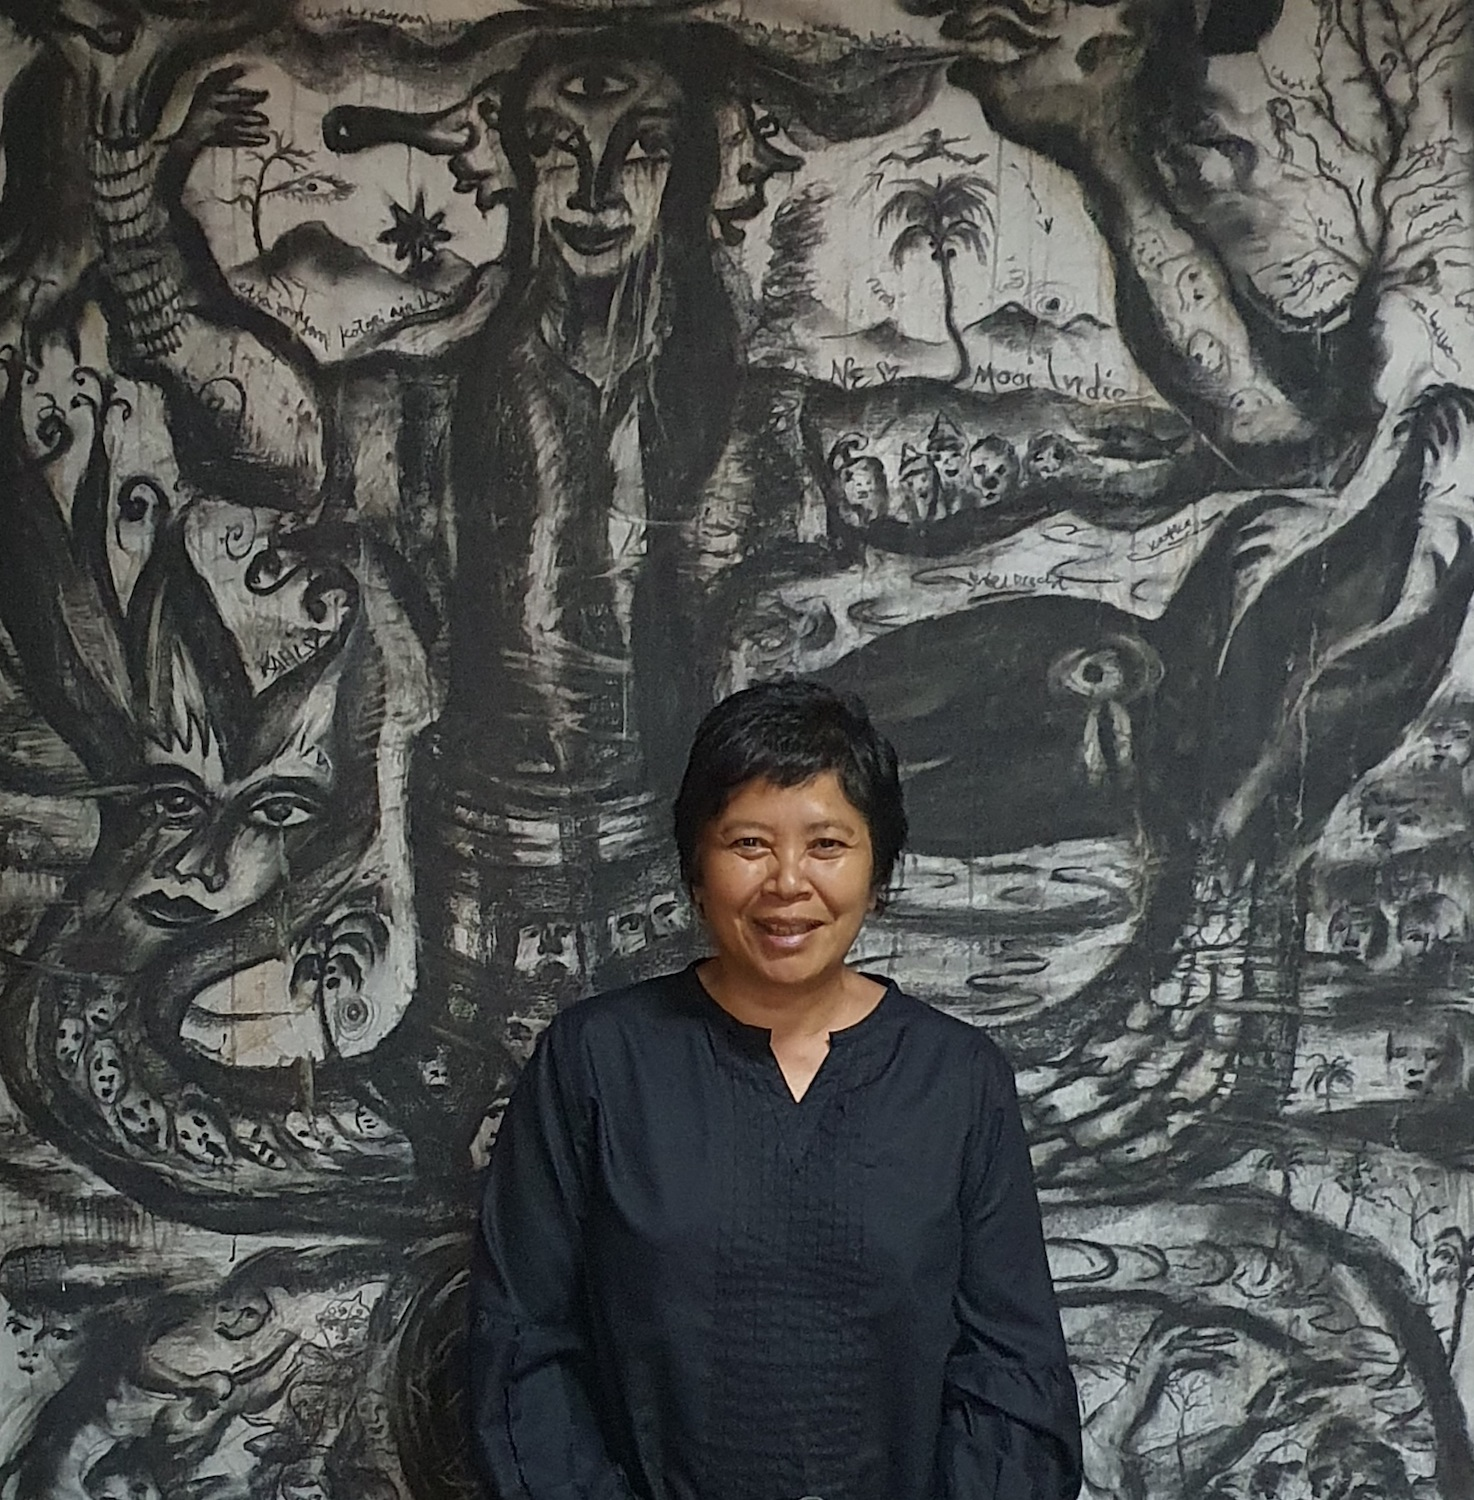 Andonowati at home with a work by Tisna Sanjaya in the background. Courtesy of Andonowati.